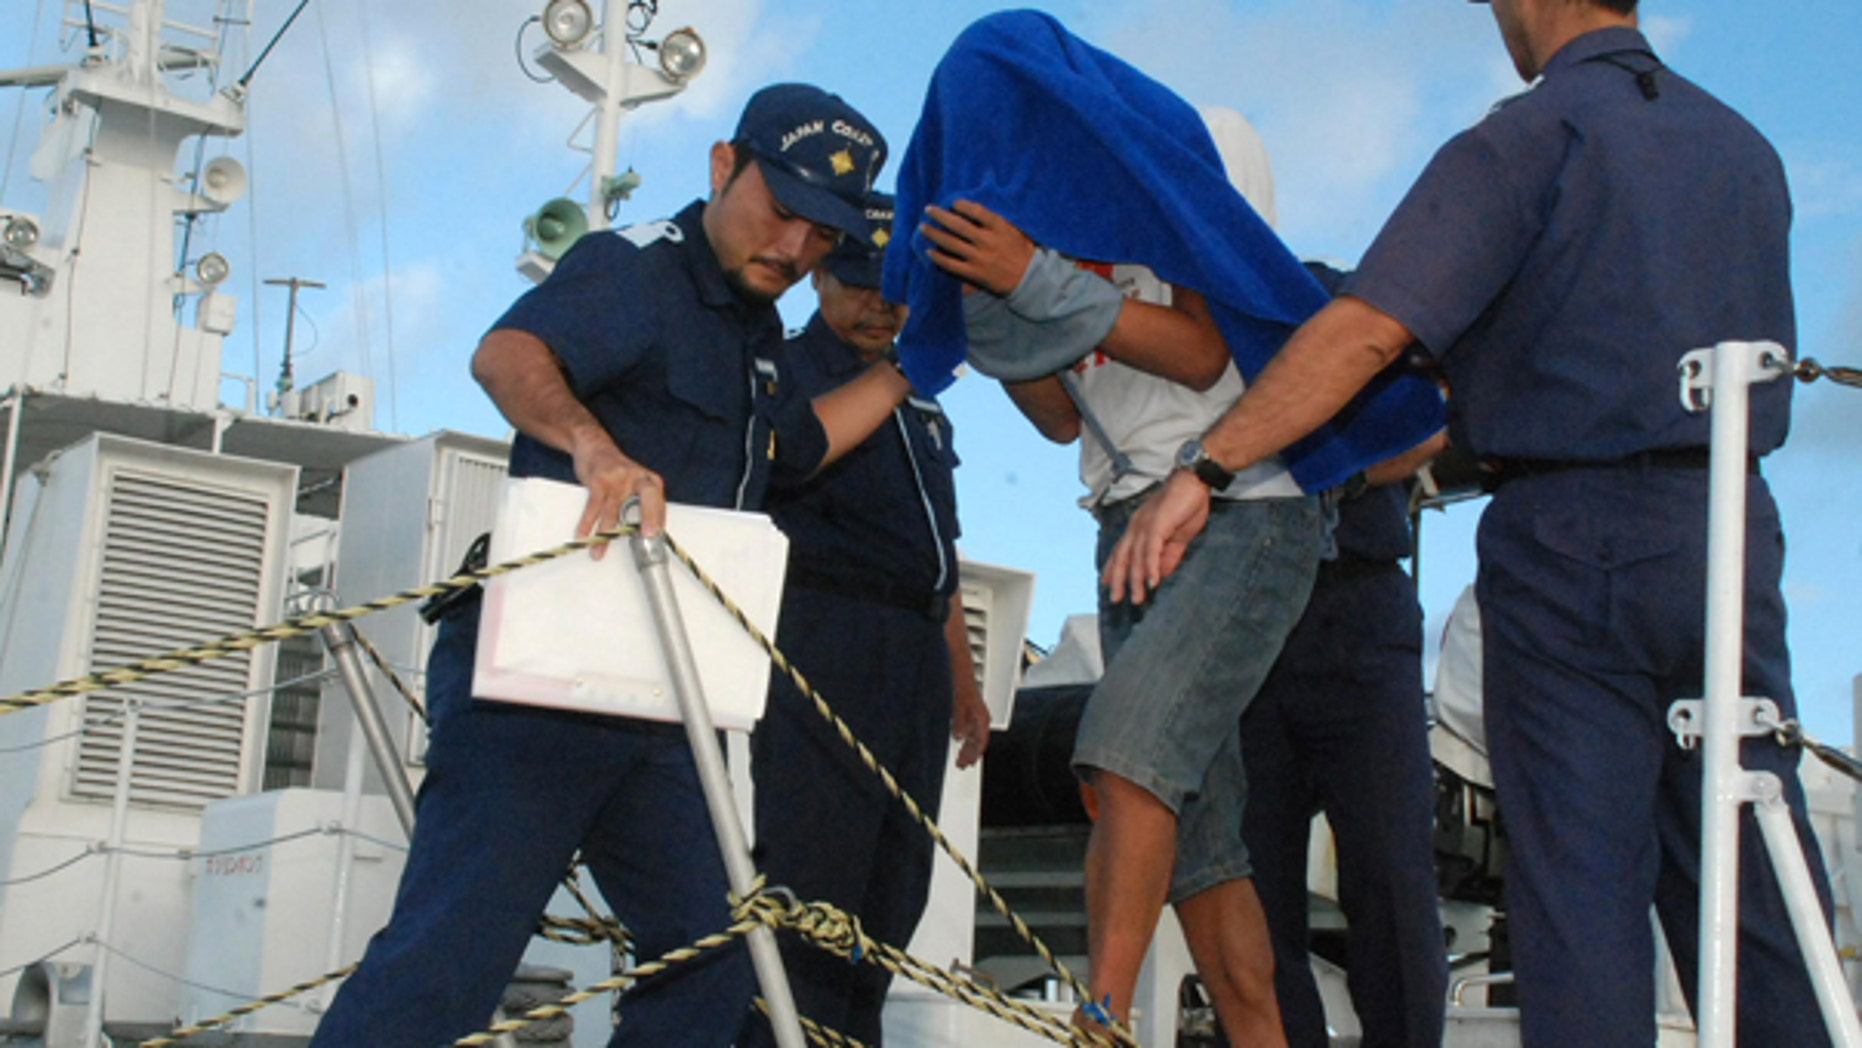 Sept. 8: Japan Coast Guard personnel disembark Zhan Qixiong, the 41-year-old Chinese captain of a Chinese fishing boat, center, at a port on Ishigaki island. The boat collided with two Japanese patrol vessels near disputed islands causing more than 2 weeks of strained relations between the two countries, before Japan announced the captain's release.